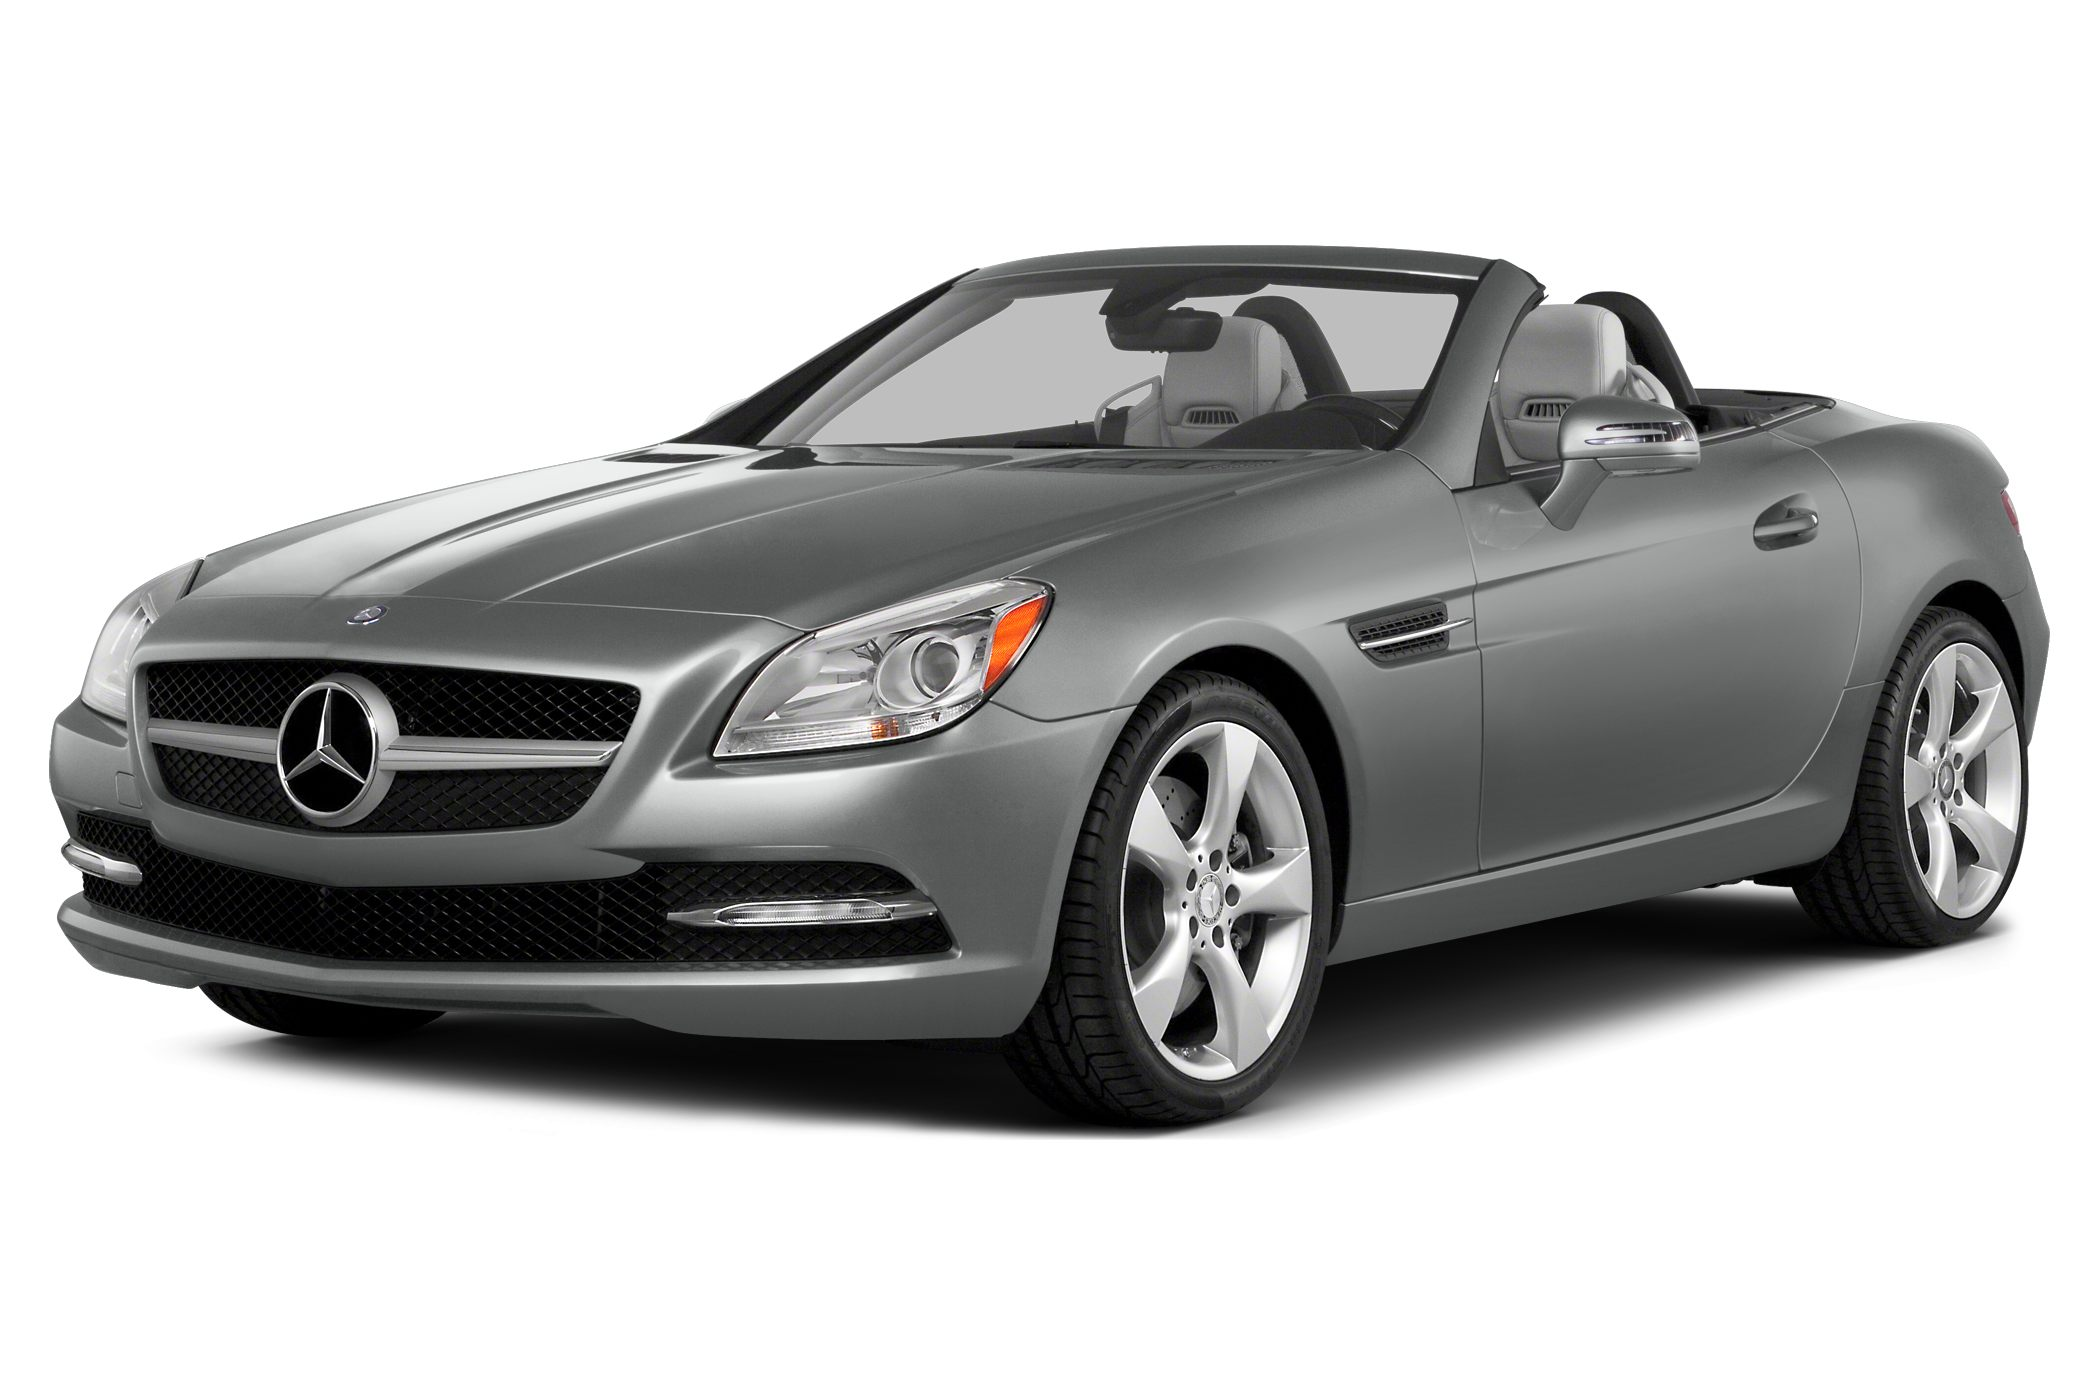 2014 Mercedes-Benz SLK-Class SLK350 Convertible for sale in Atlanta for $73,480 with 18 miles.